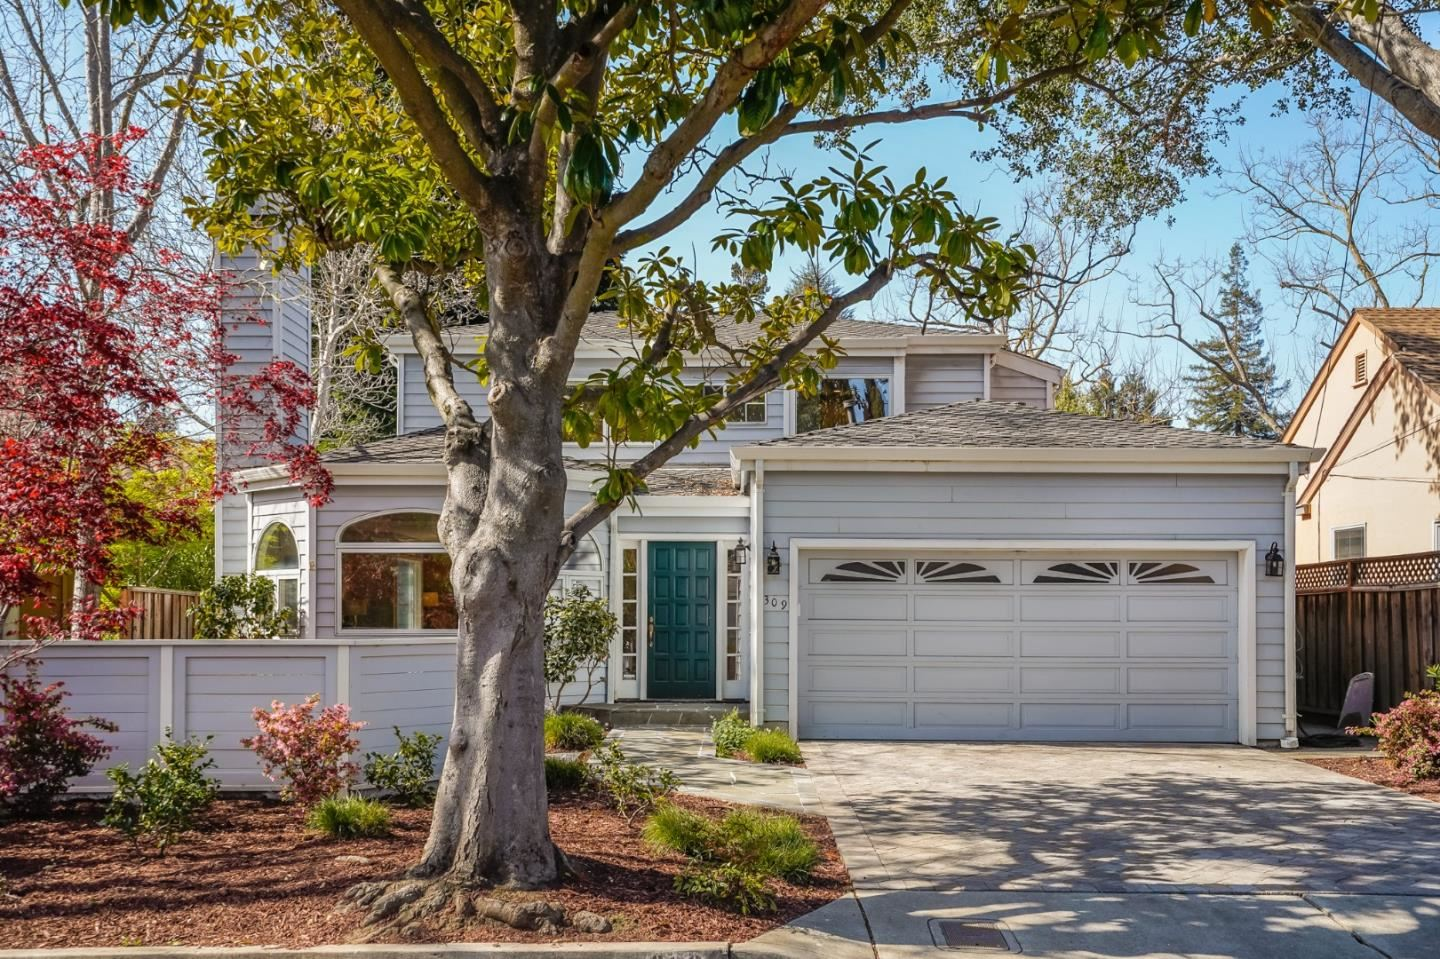 Photo for 309 University DR, MENLO PARK, CA 94025 (MLS # ML81837412)